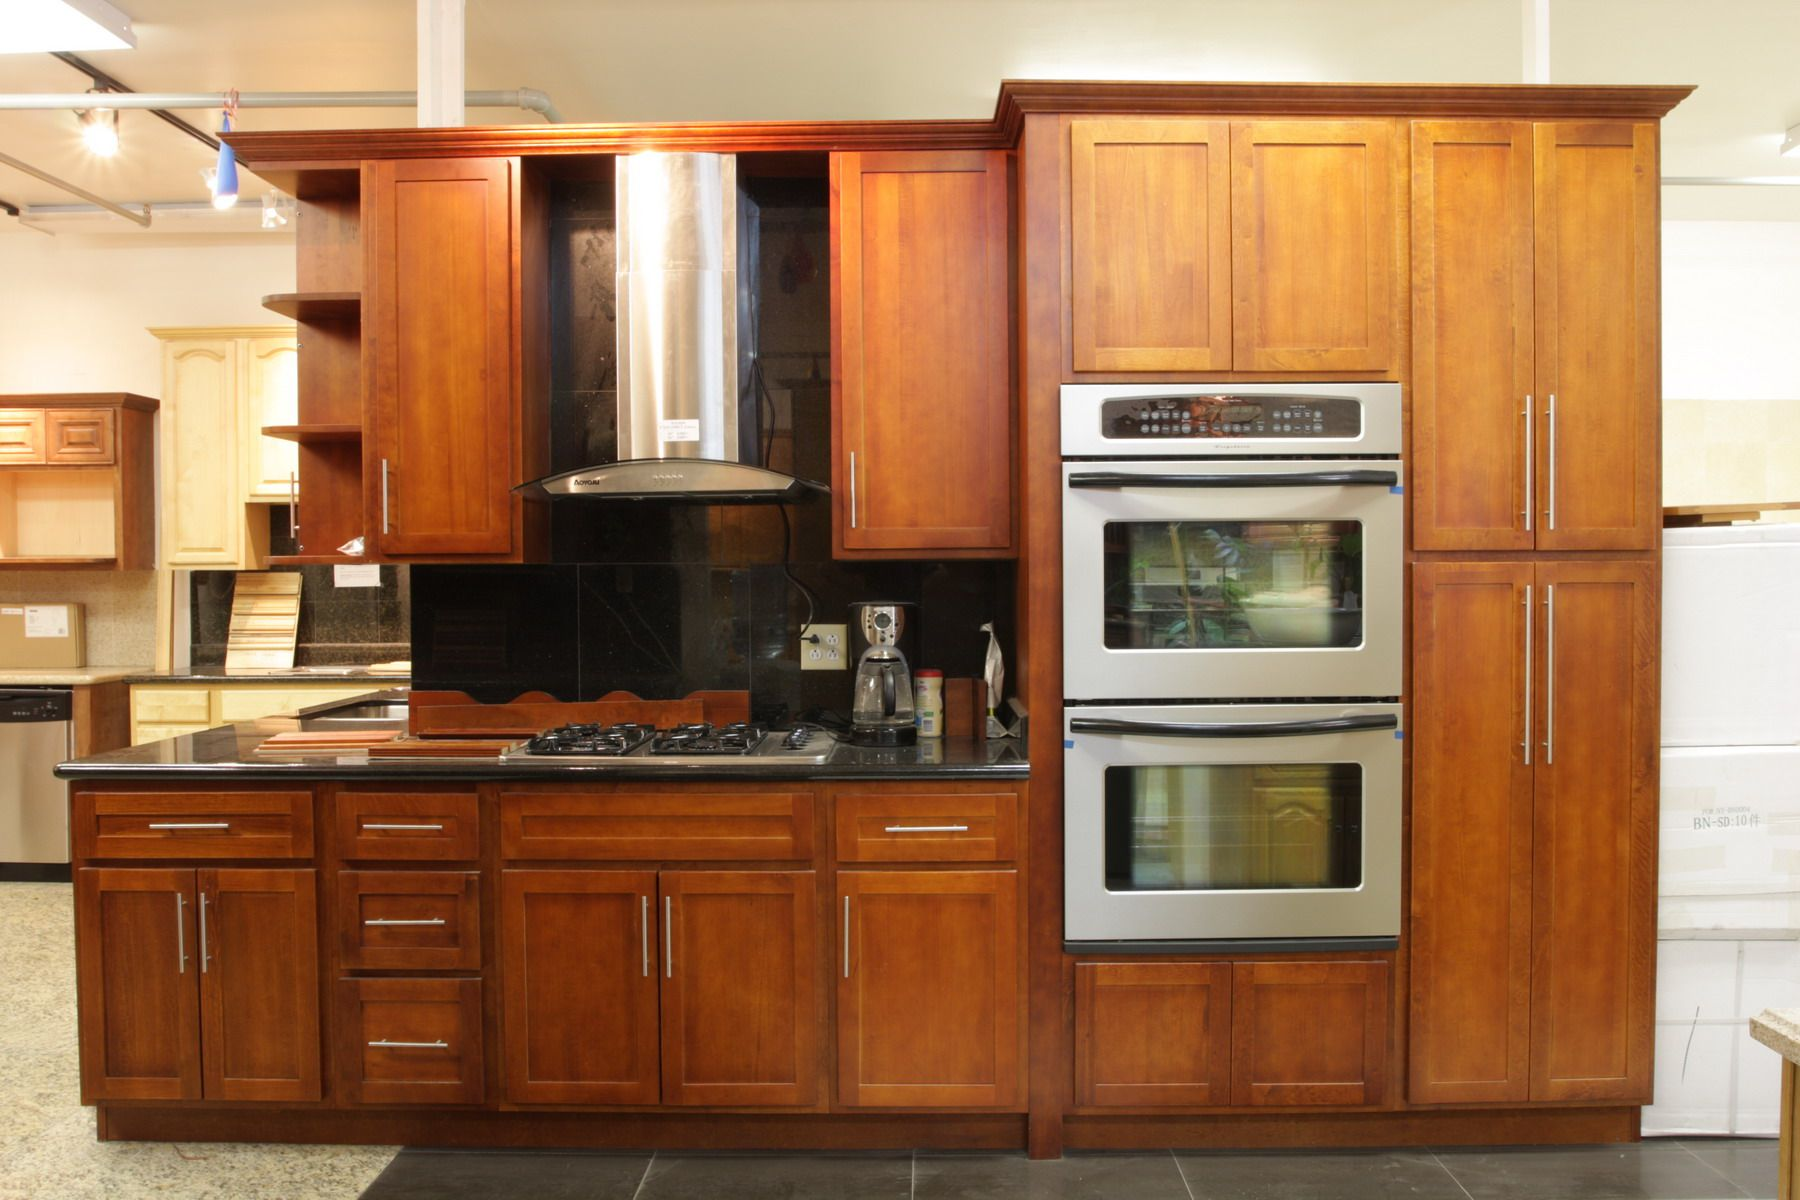 Home Depot Kitchen Google Search Modern Kitchen Kitchen Wood Cabinets